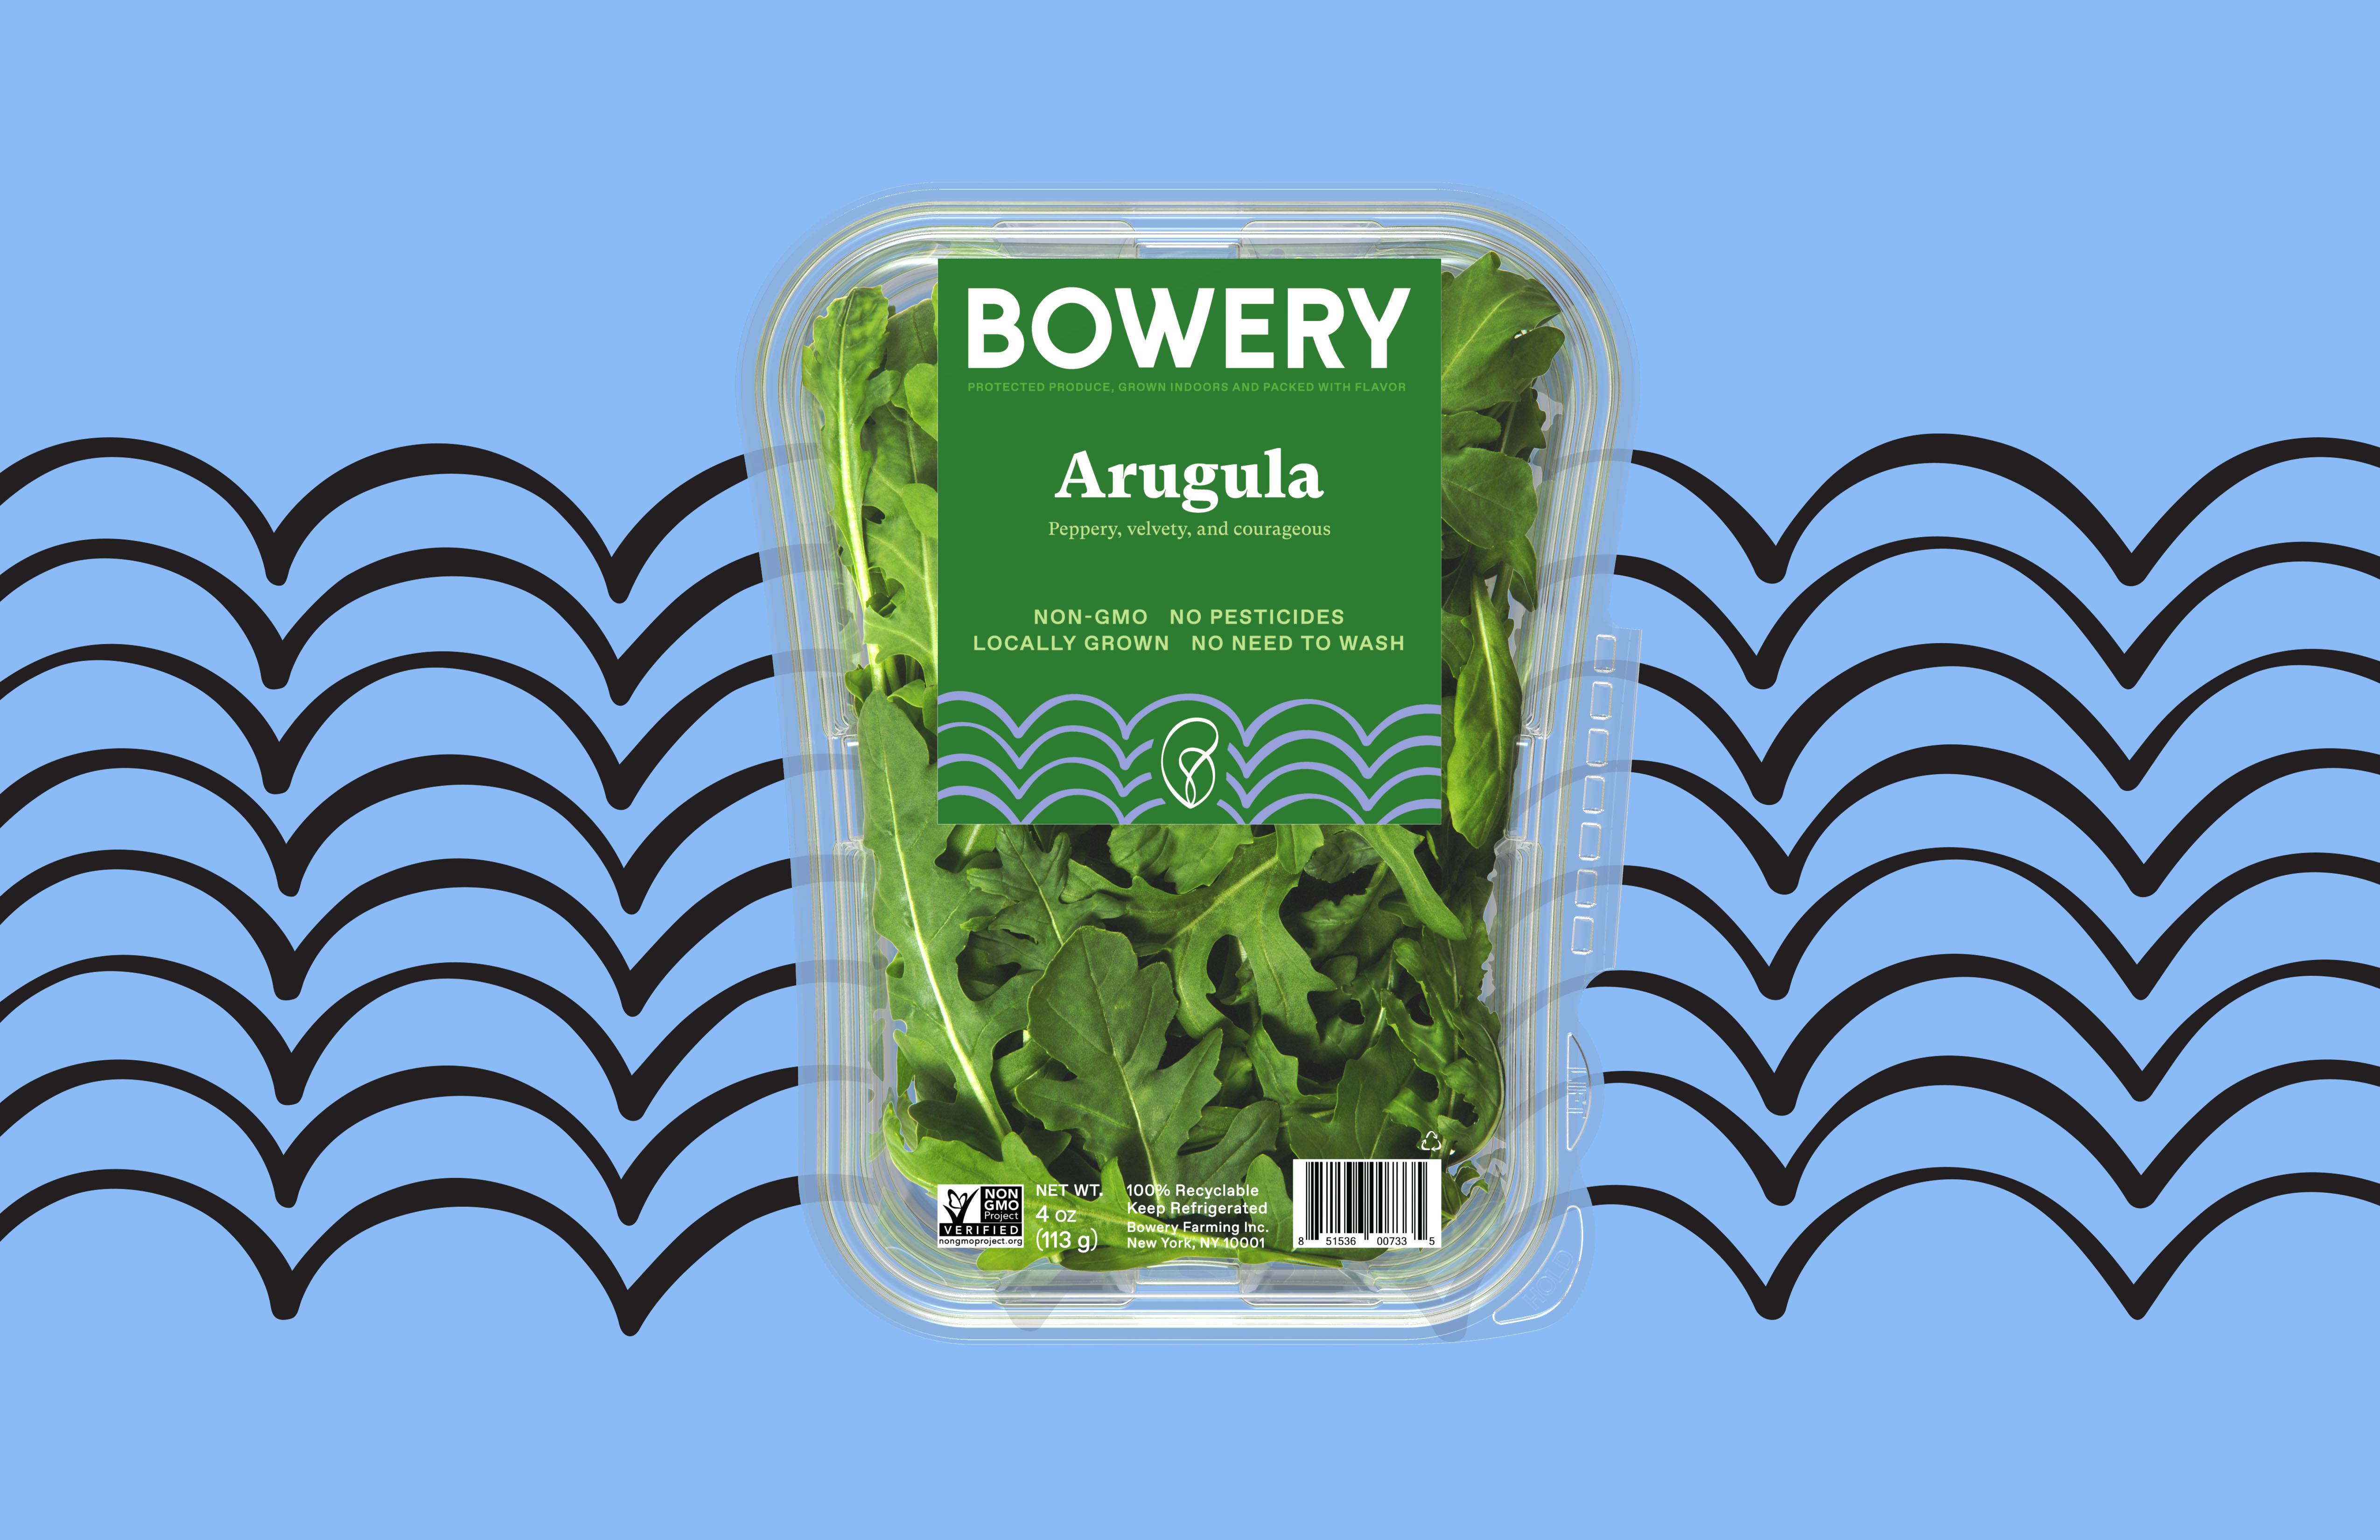 Red Antler and Bowery Farming Team Up Again for a Design Rebrand